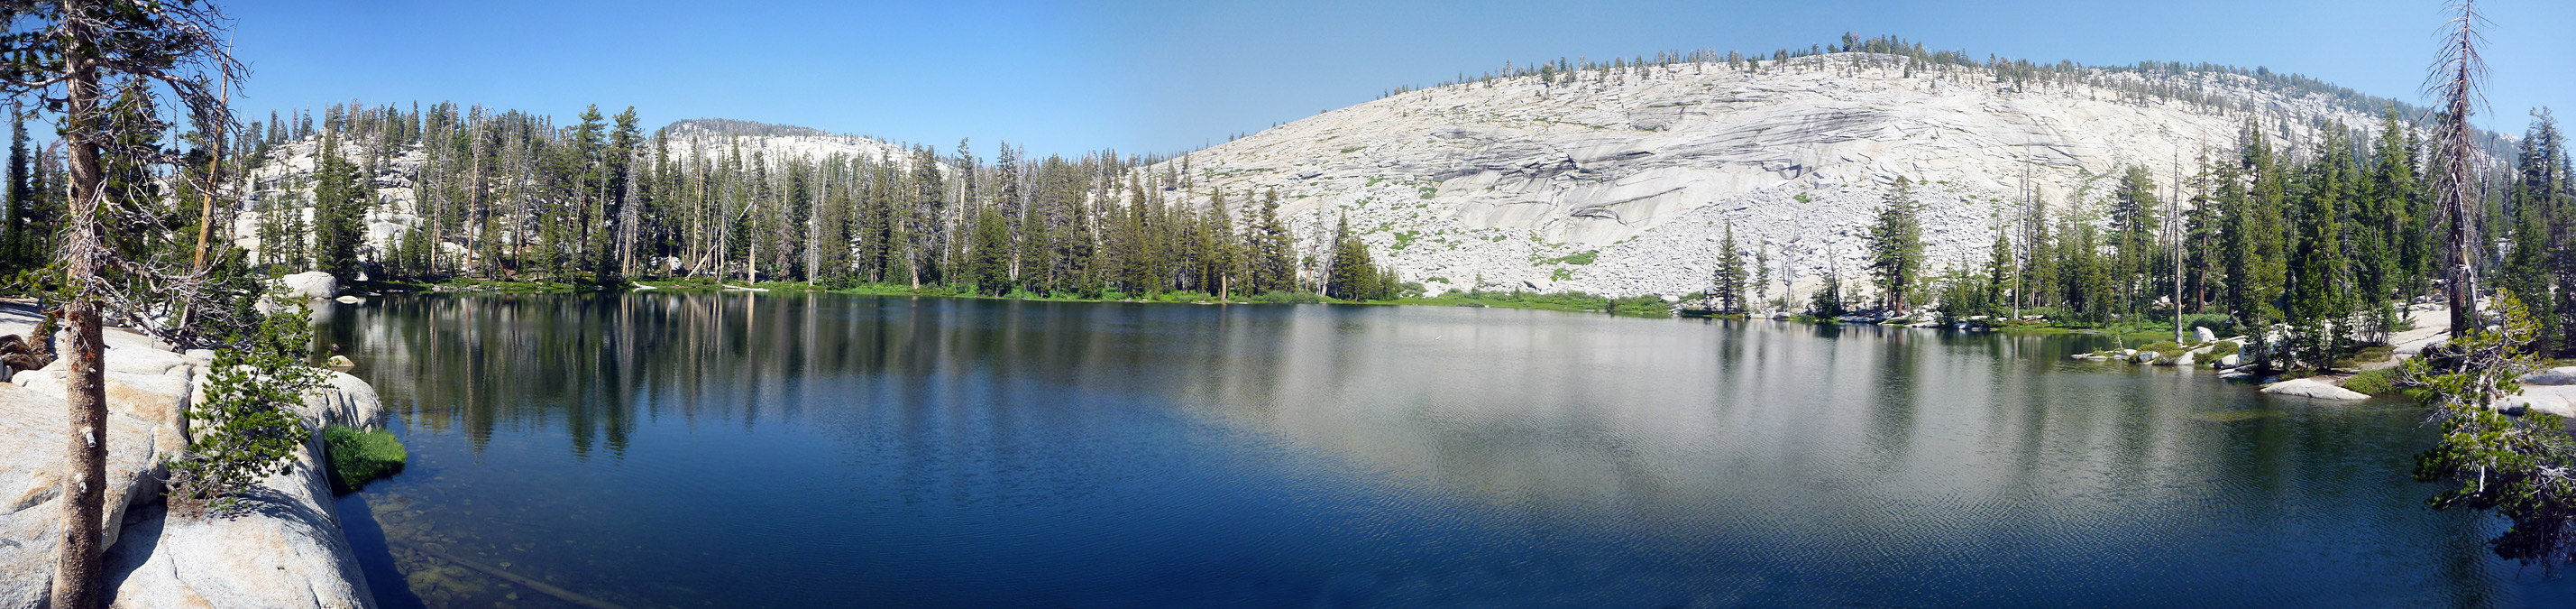 Panorama of the first lake